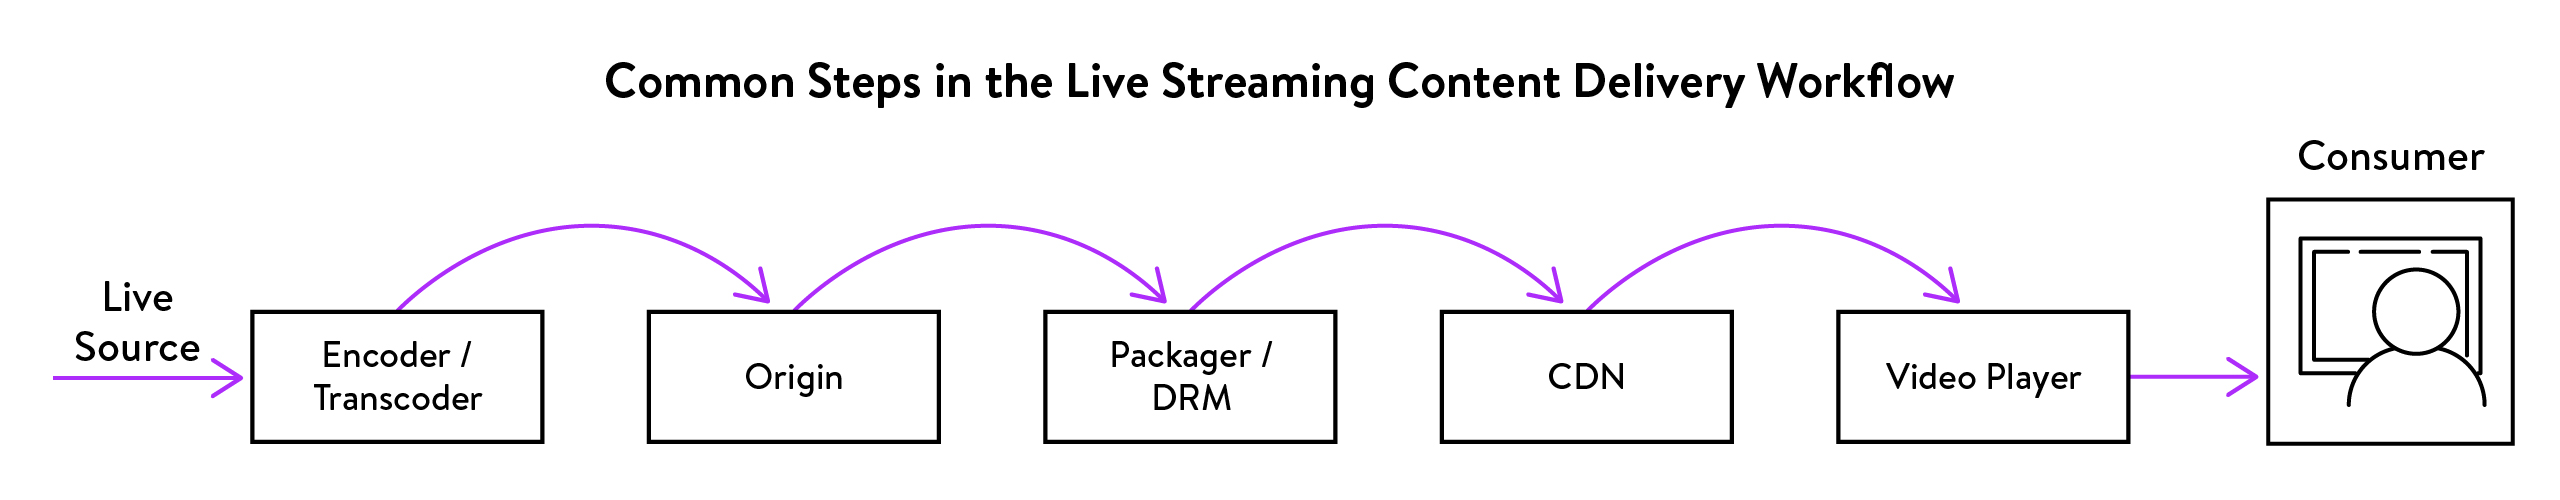 Content Delivery WorkflowArtboard 1@2x-100